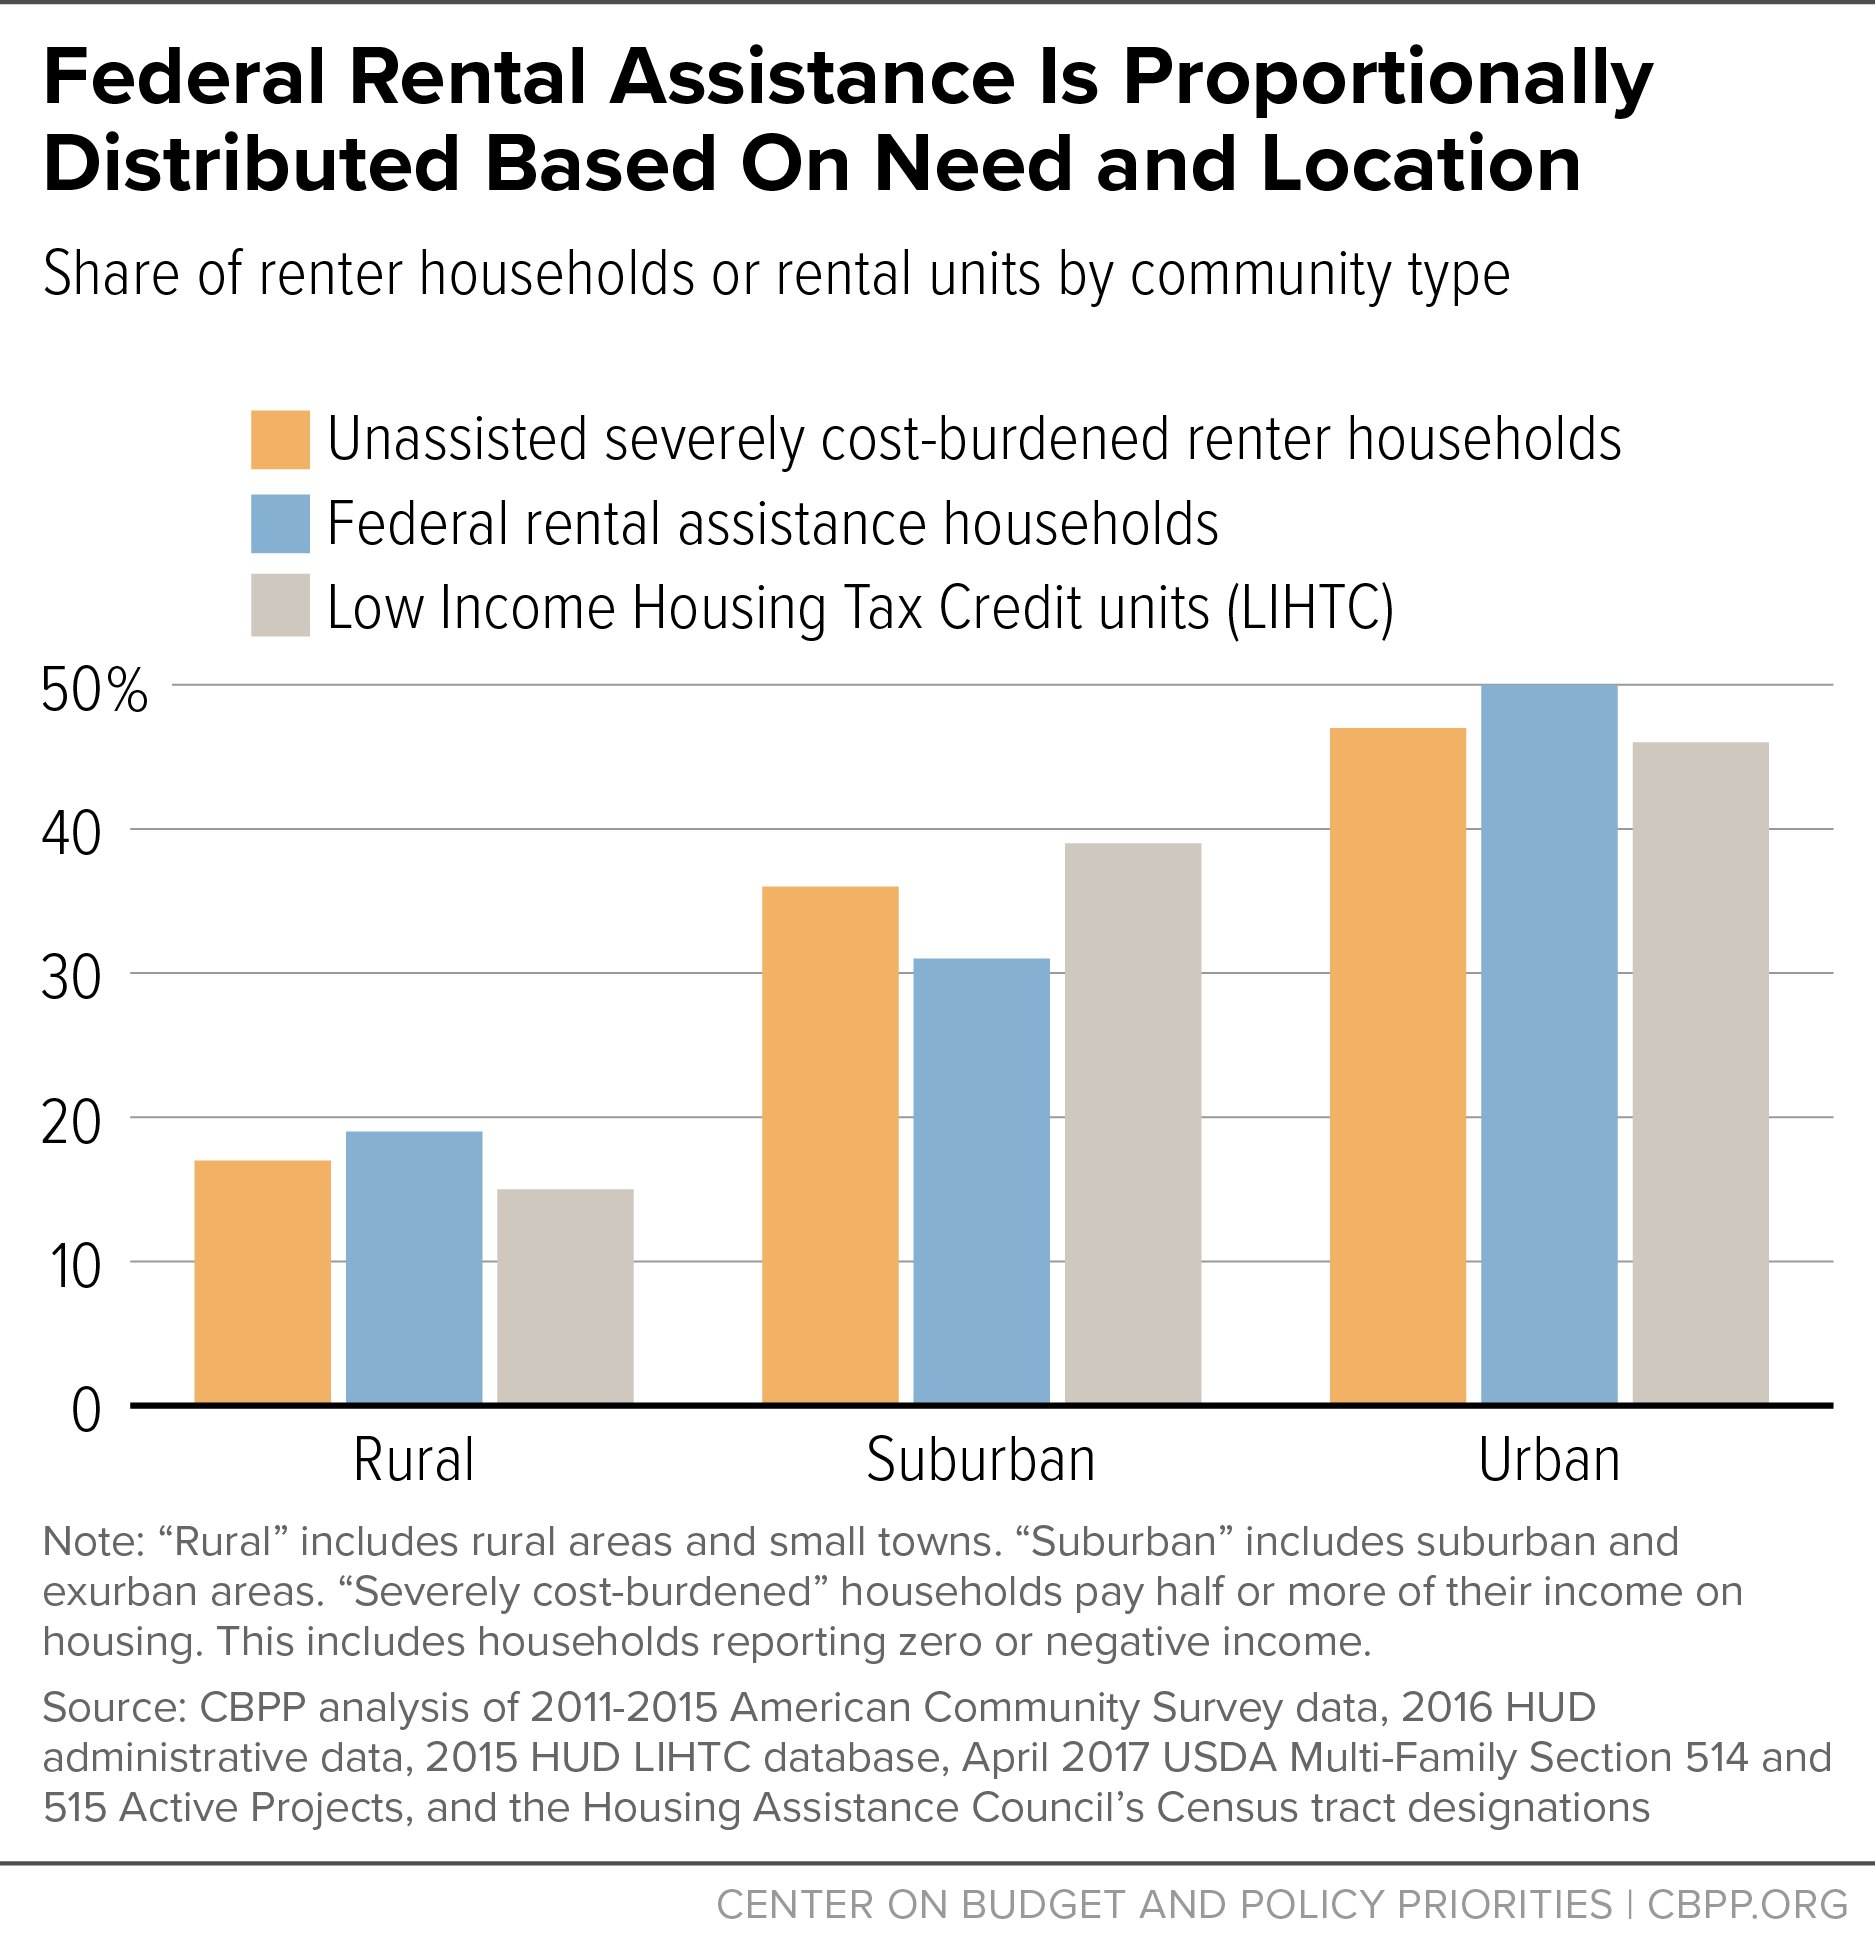 Federal Rental Assistance Is Proportionally Distributed